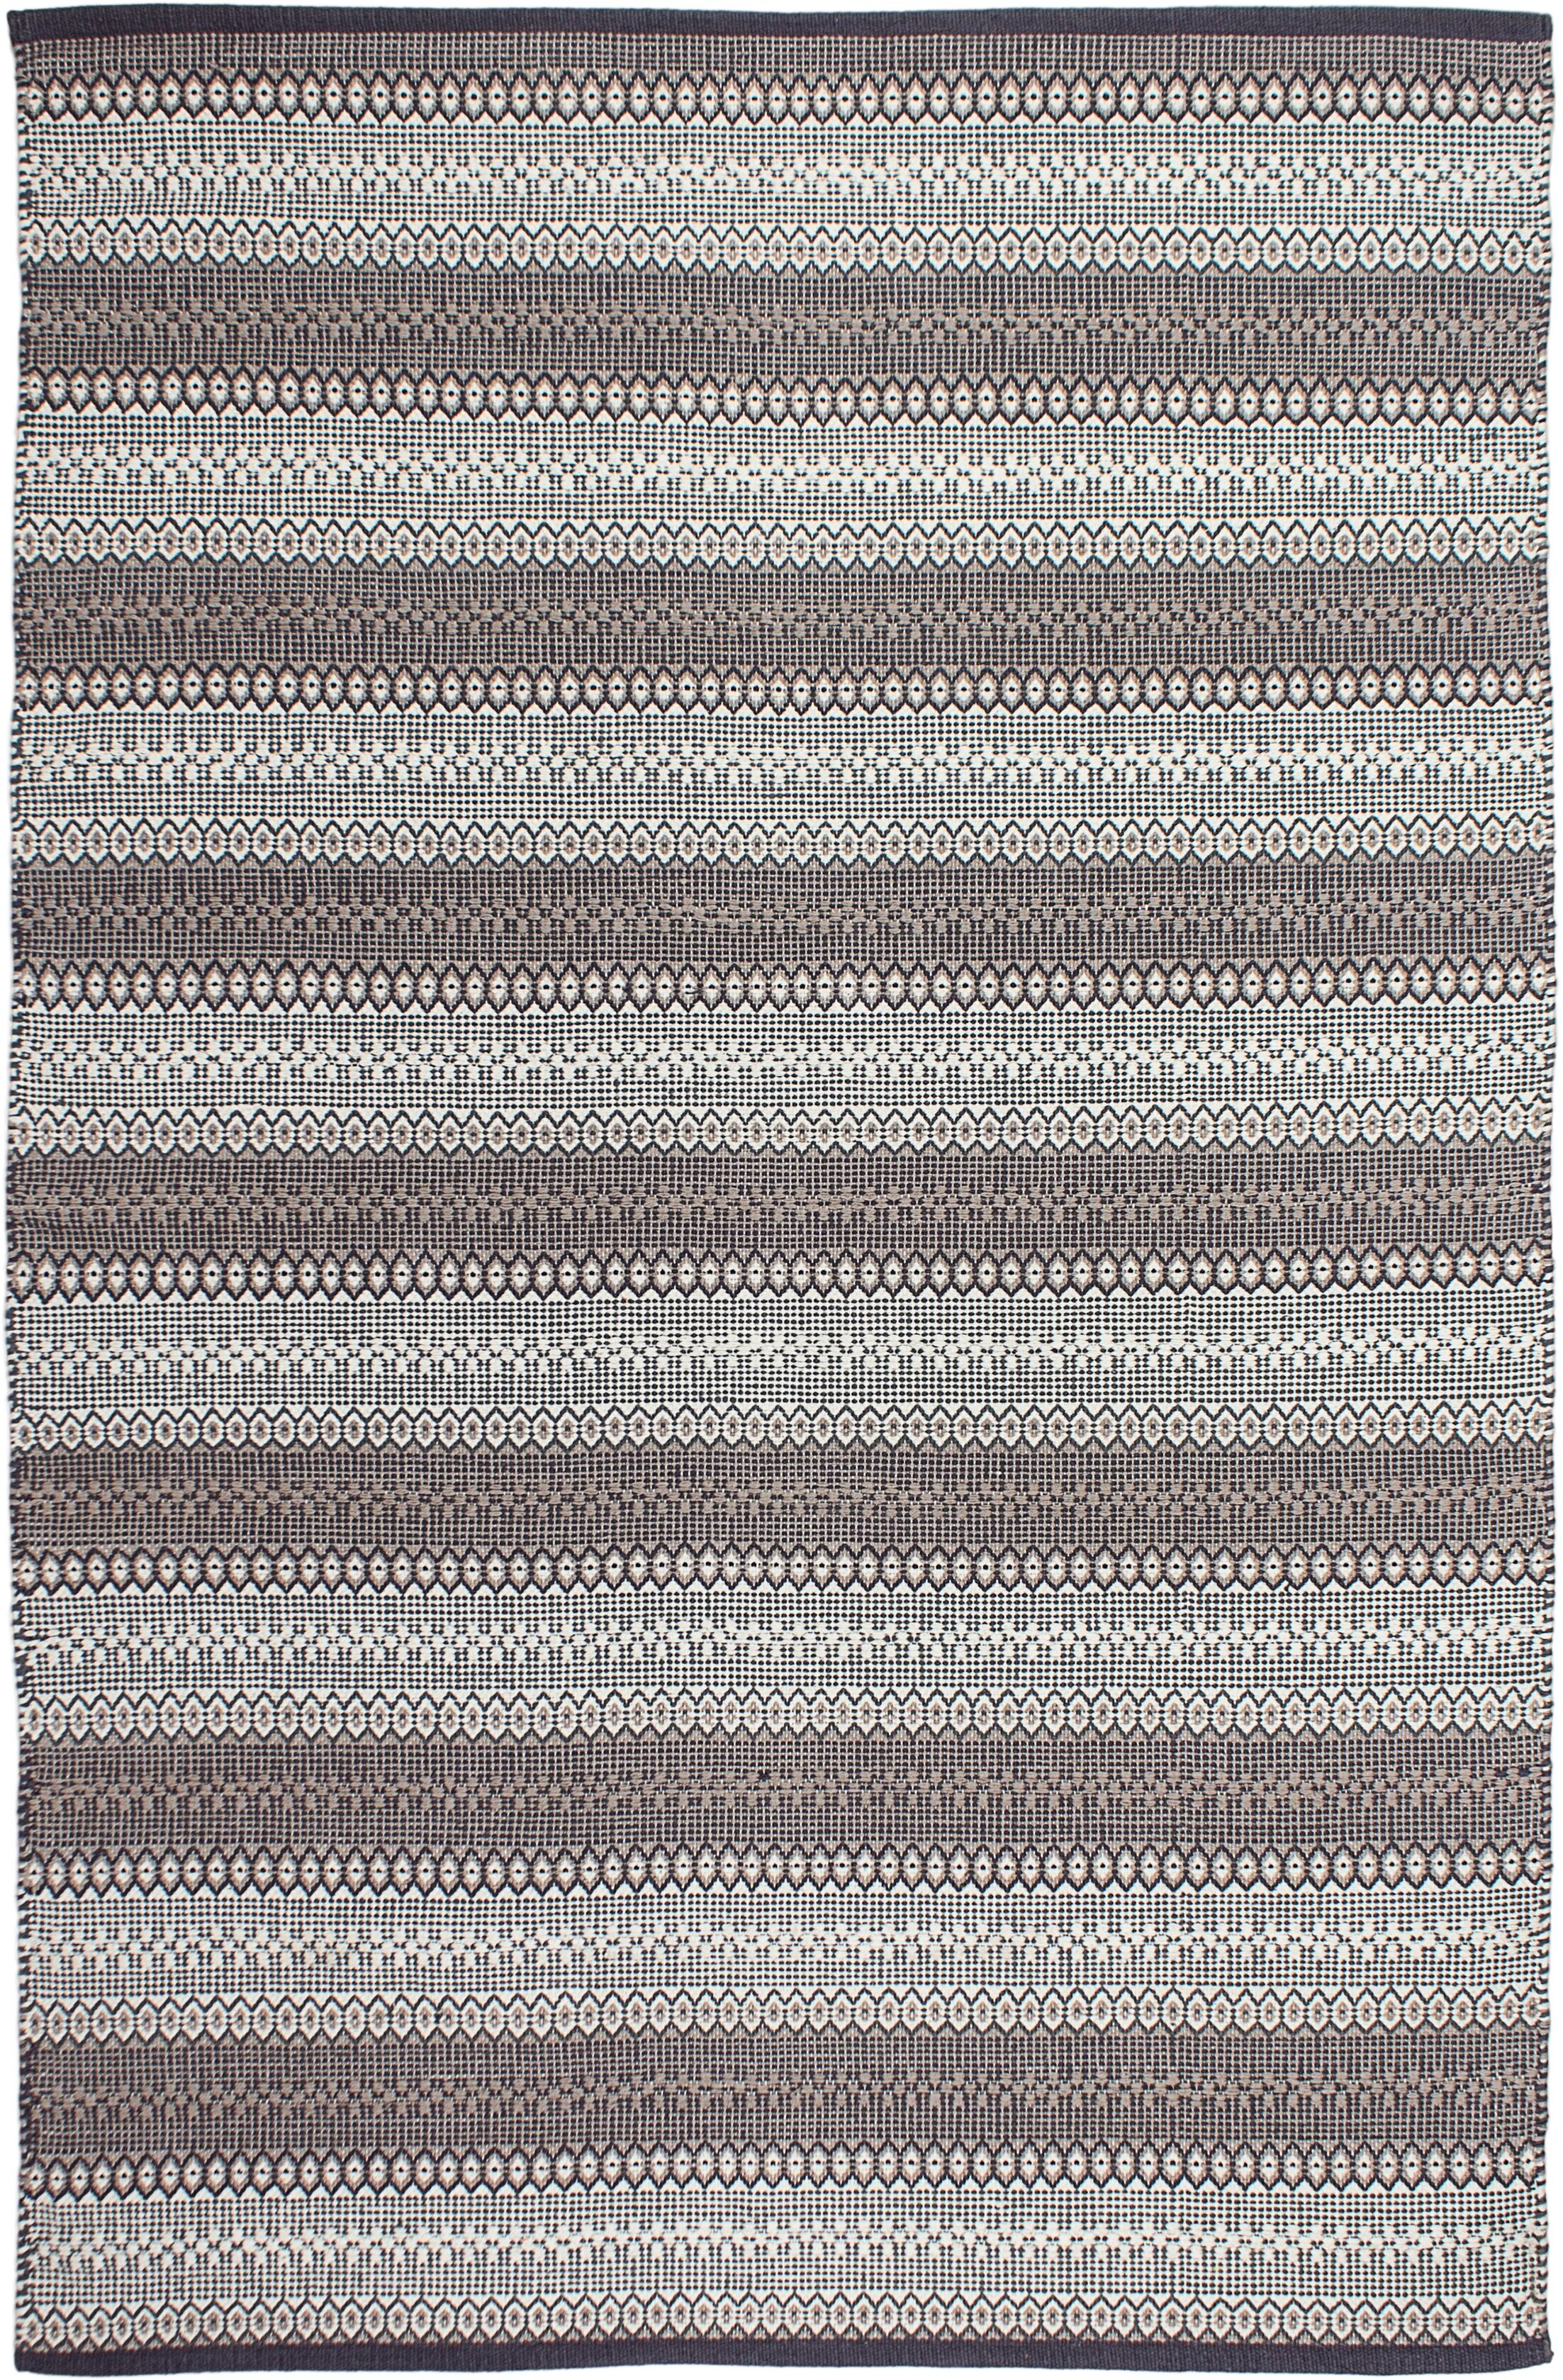 Estate Hand-Woven Gray Area Rug Rug Size: 6' x 9'